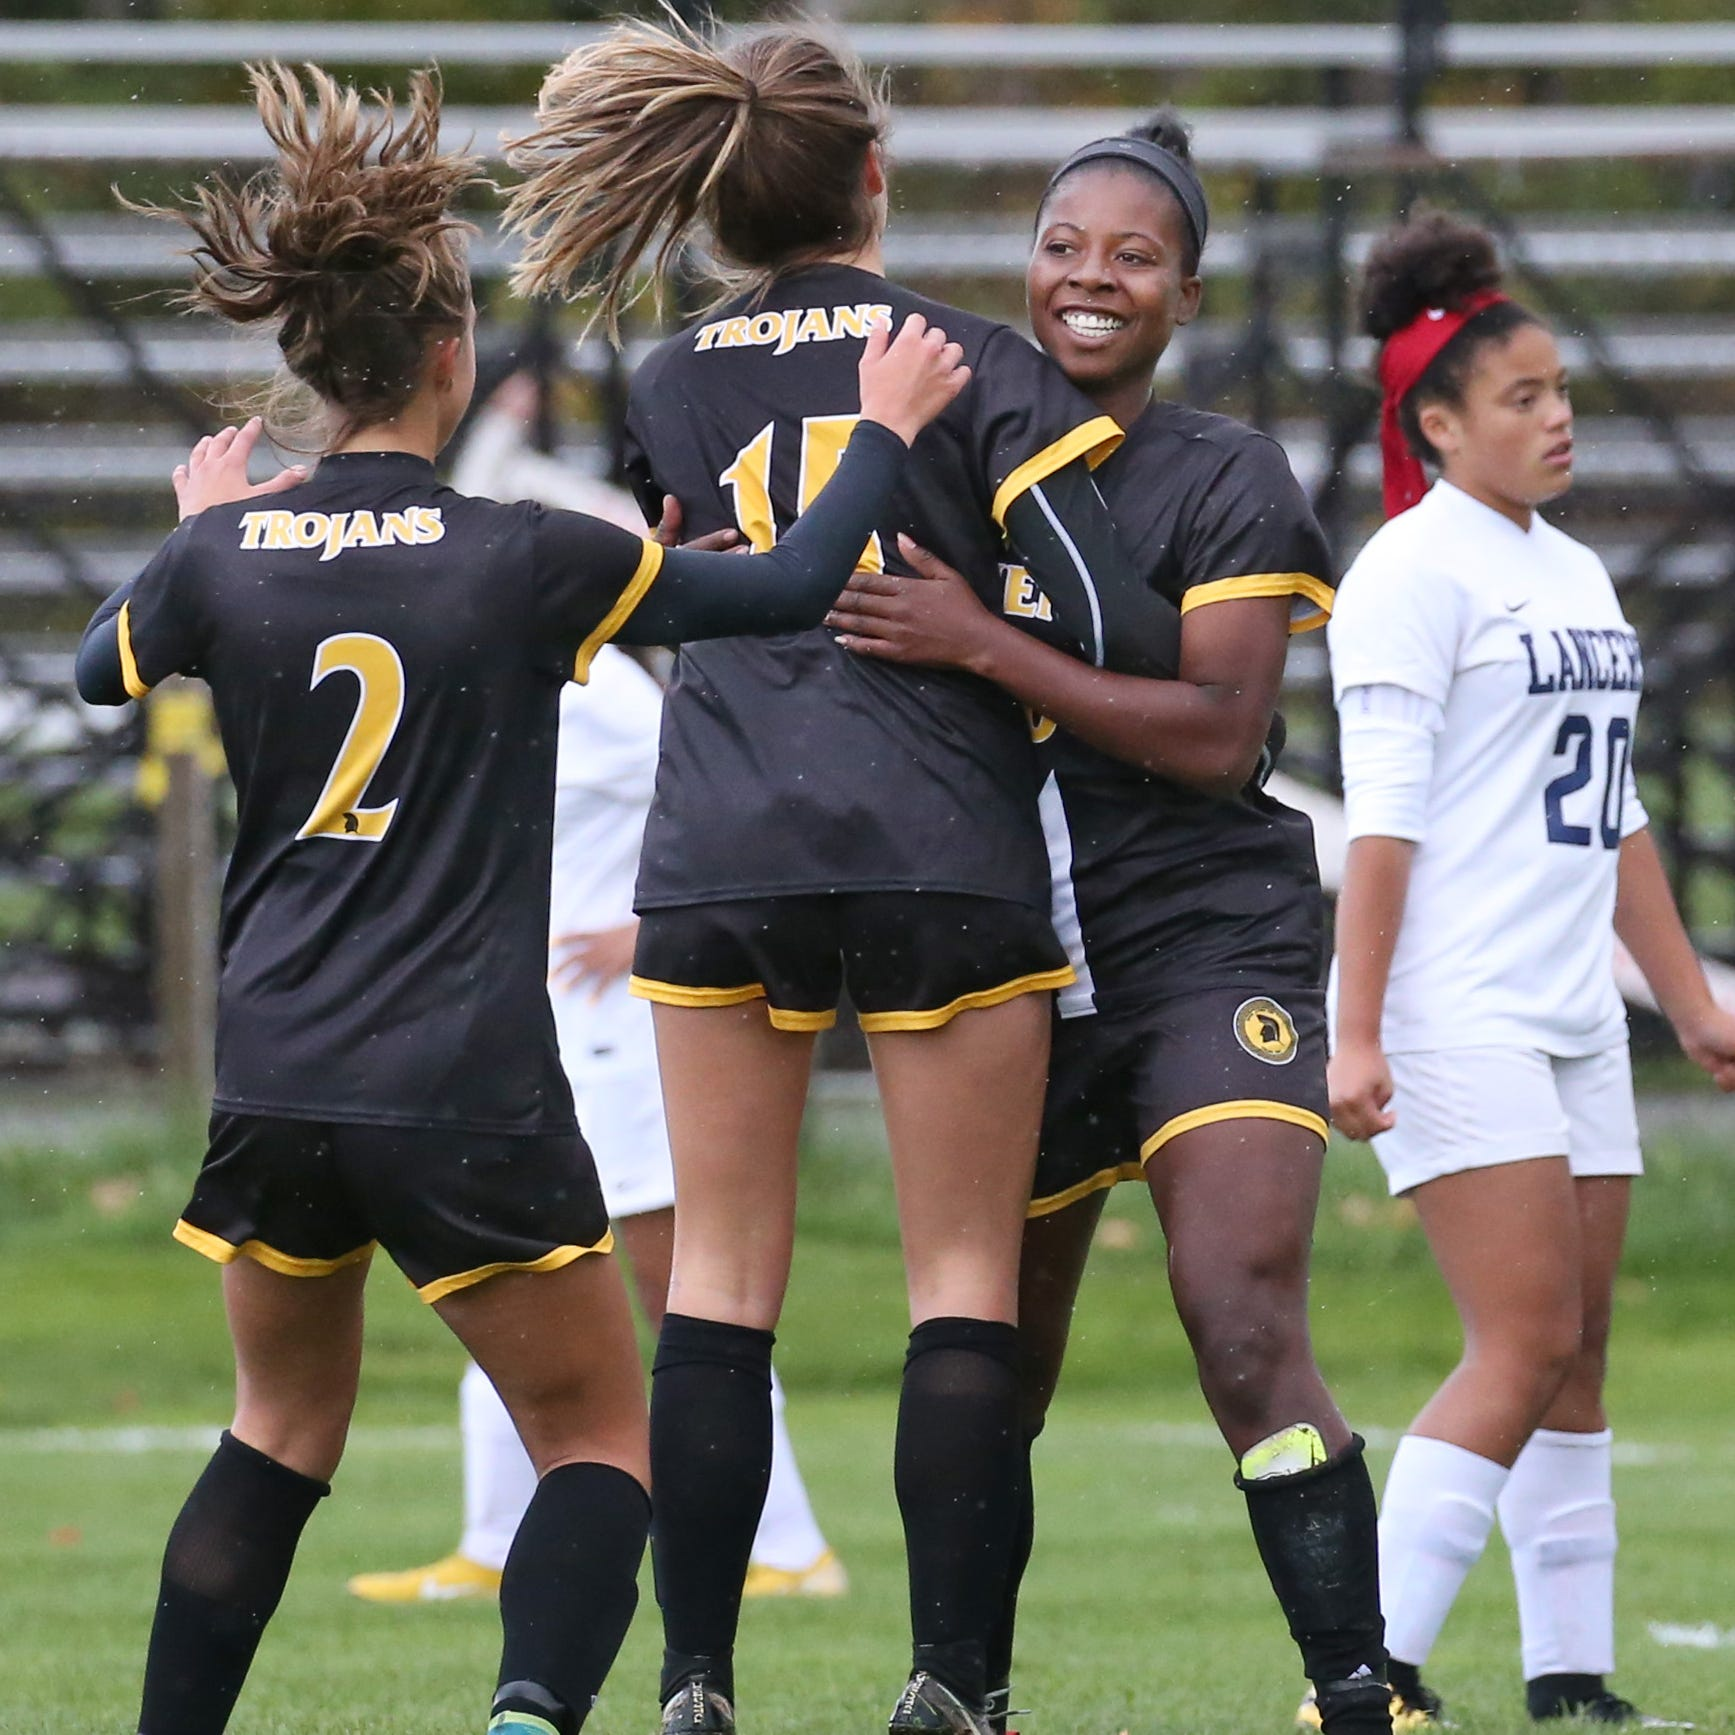 Greece Athena's Waniya Hudson, right, celebrates her first goal of the game against Eastridge with teammates Jade Talone, center, and Kelsey Nugent, left, during their Section V Class A game Wednesday, Oct. 17 at Greece Athena High School.  Hudson scored all three goals for Athena in the first half, as the Trojans raced out to a 3-0 lead.